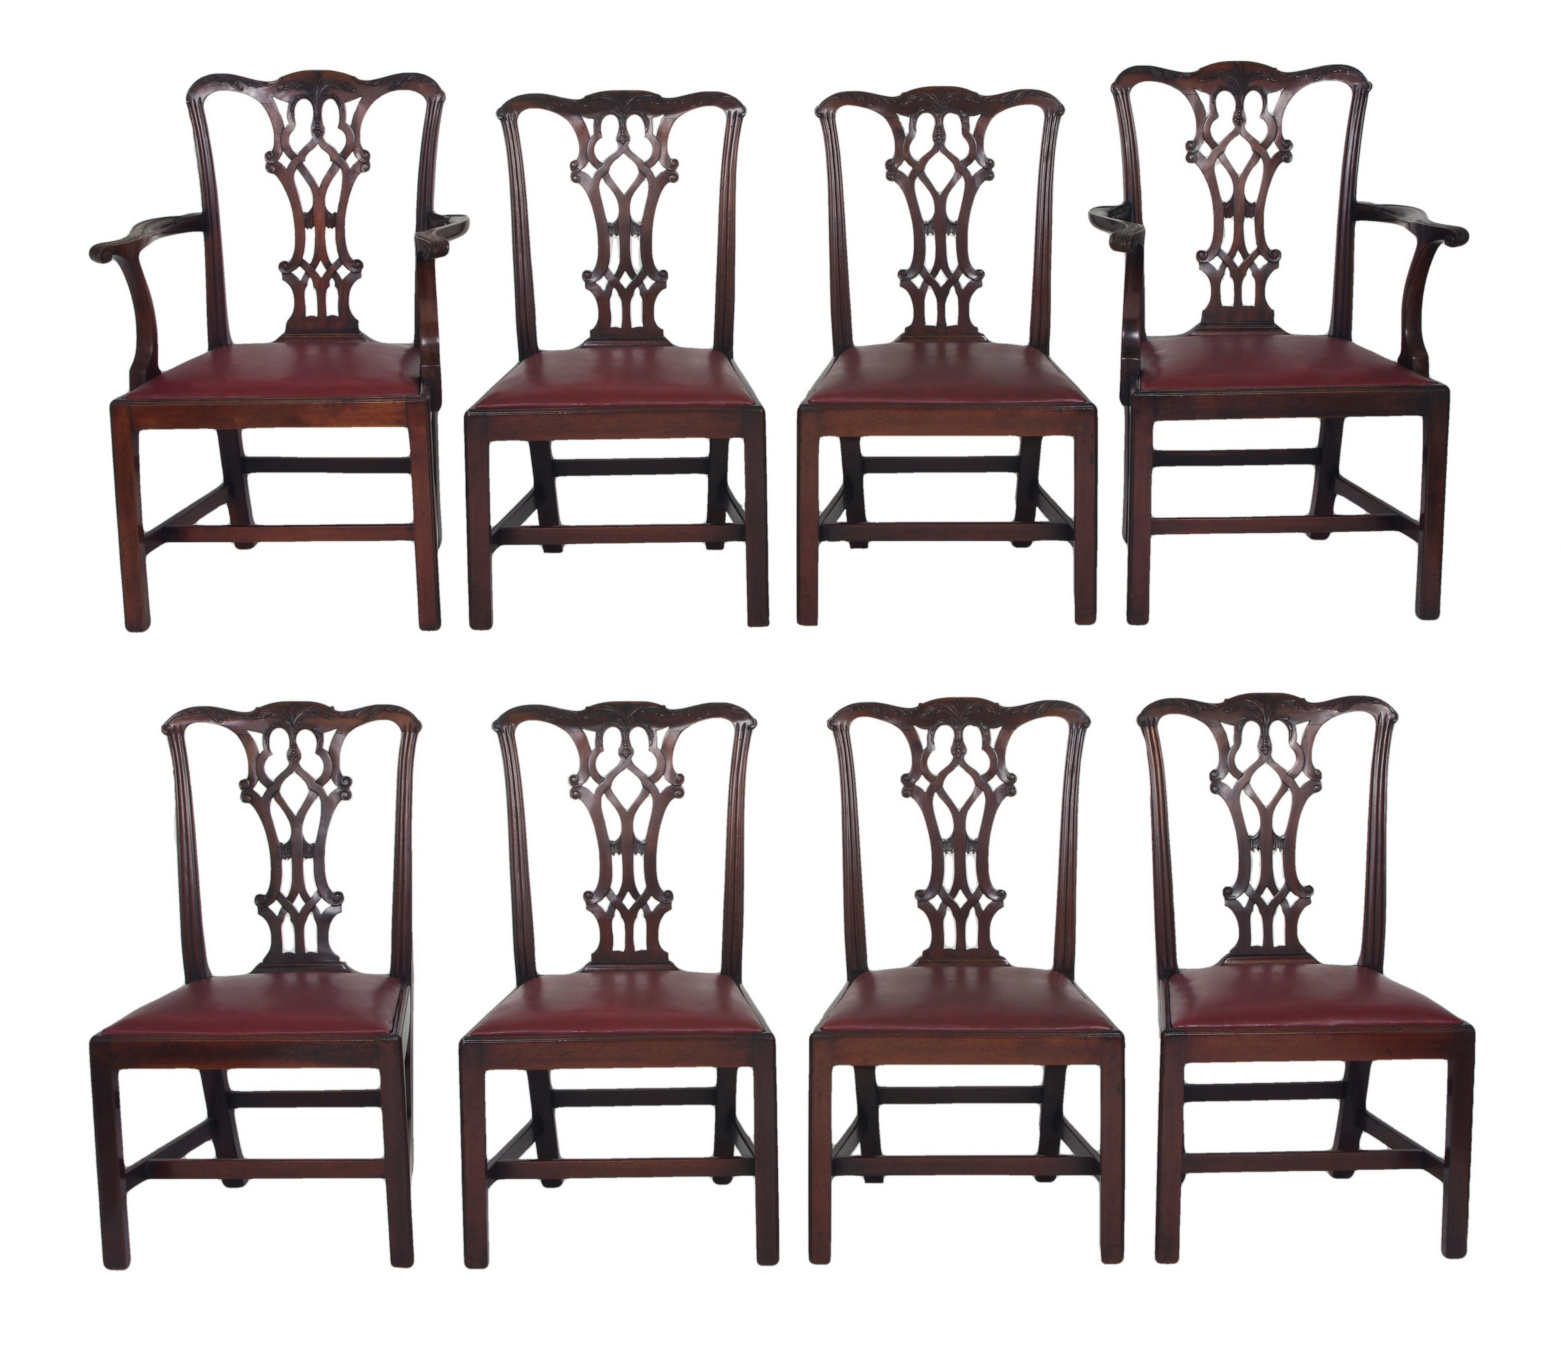 Set of Eight Chippendale Style Mahogany Dining Chairs (6+2), early 19th c.